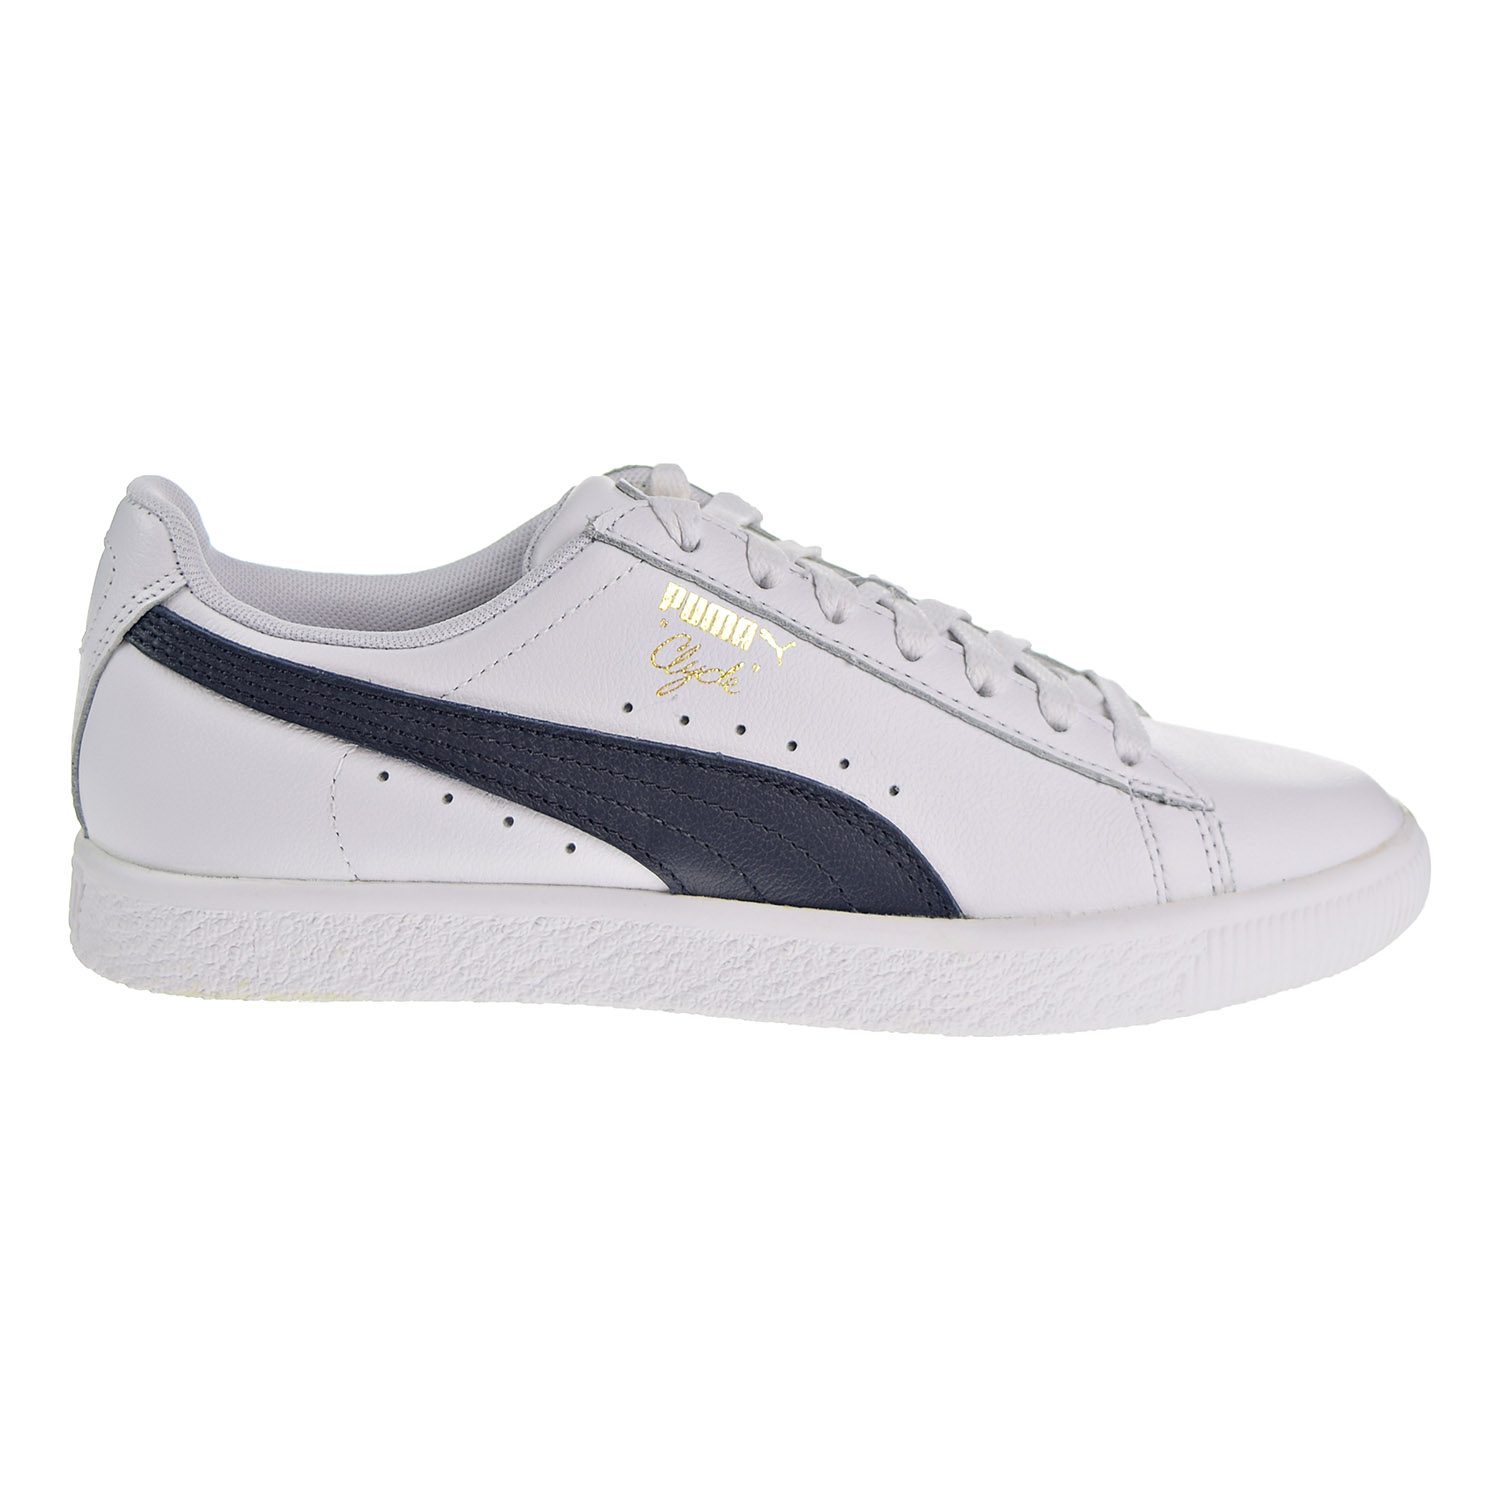 44ca7e6c068 Details about Puma Clyde Core Foil Women's Shoes White/Navy/Team Gold  364670-02